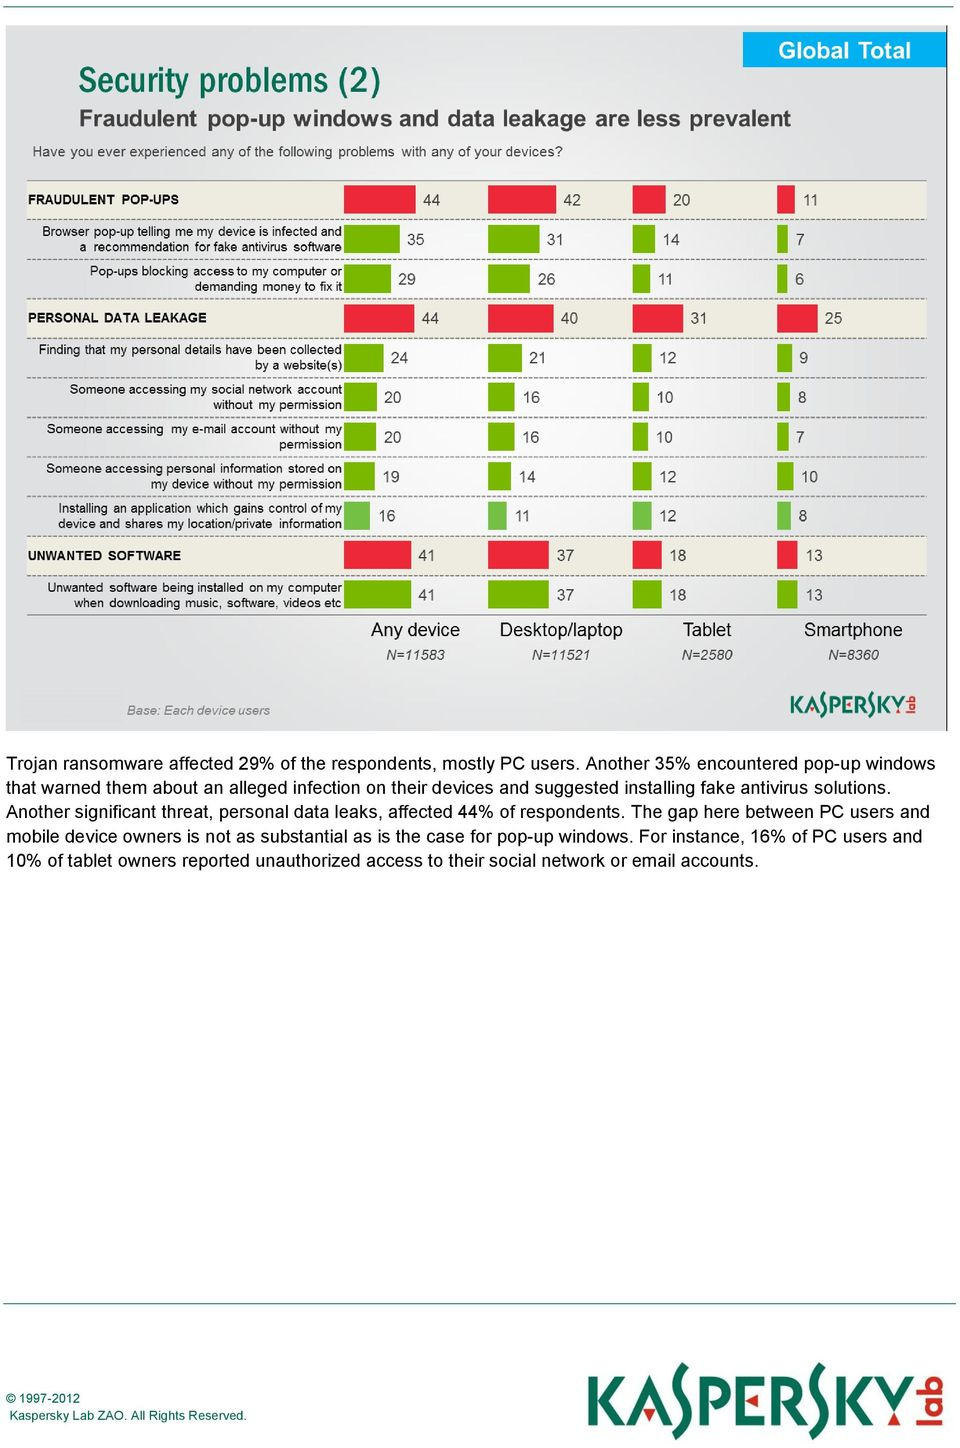 antivirus solutions. Another significant threat, personal data leaks, affected 44% of respondents.